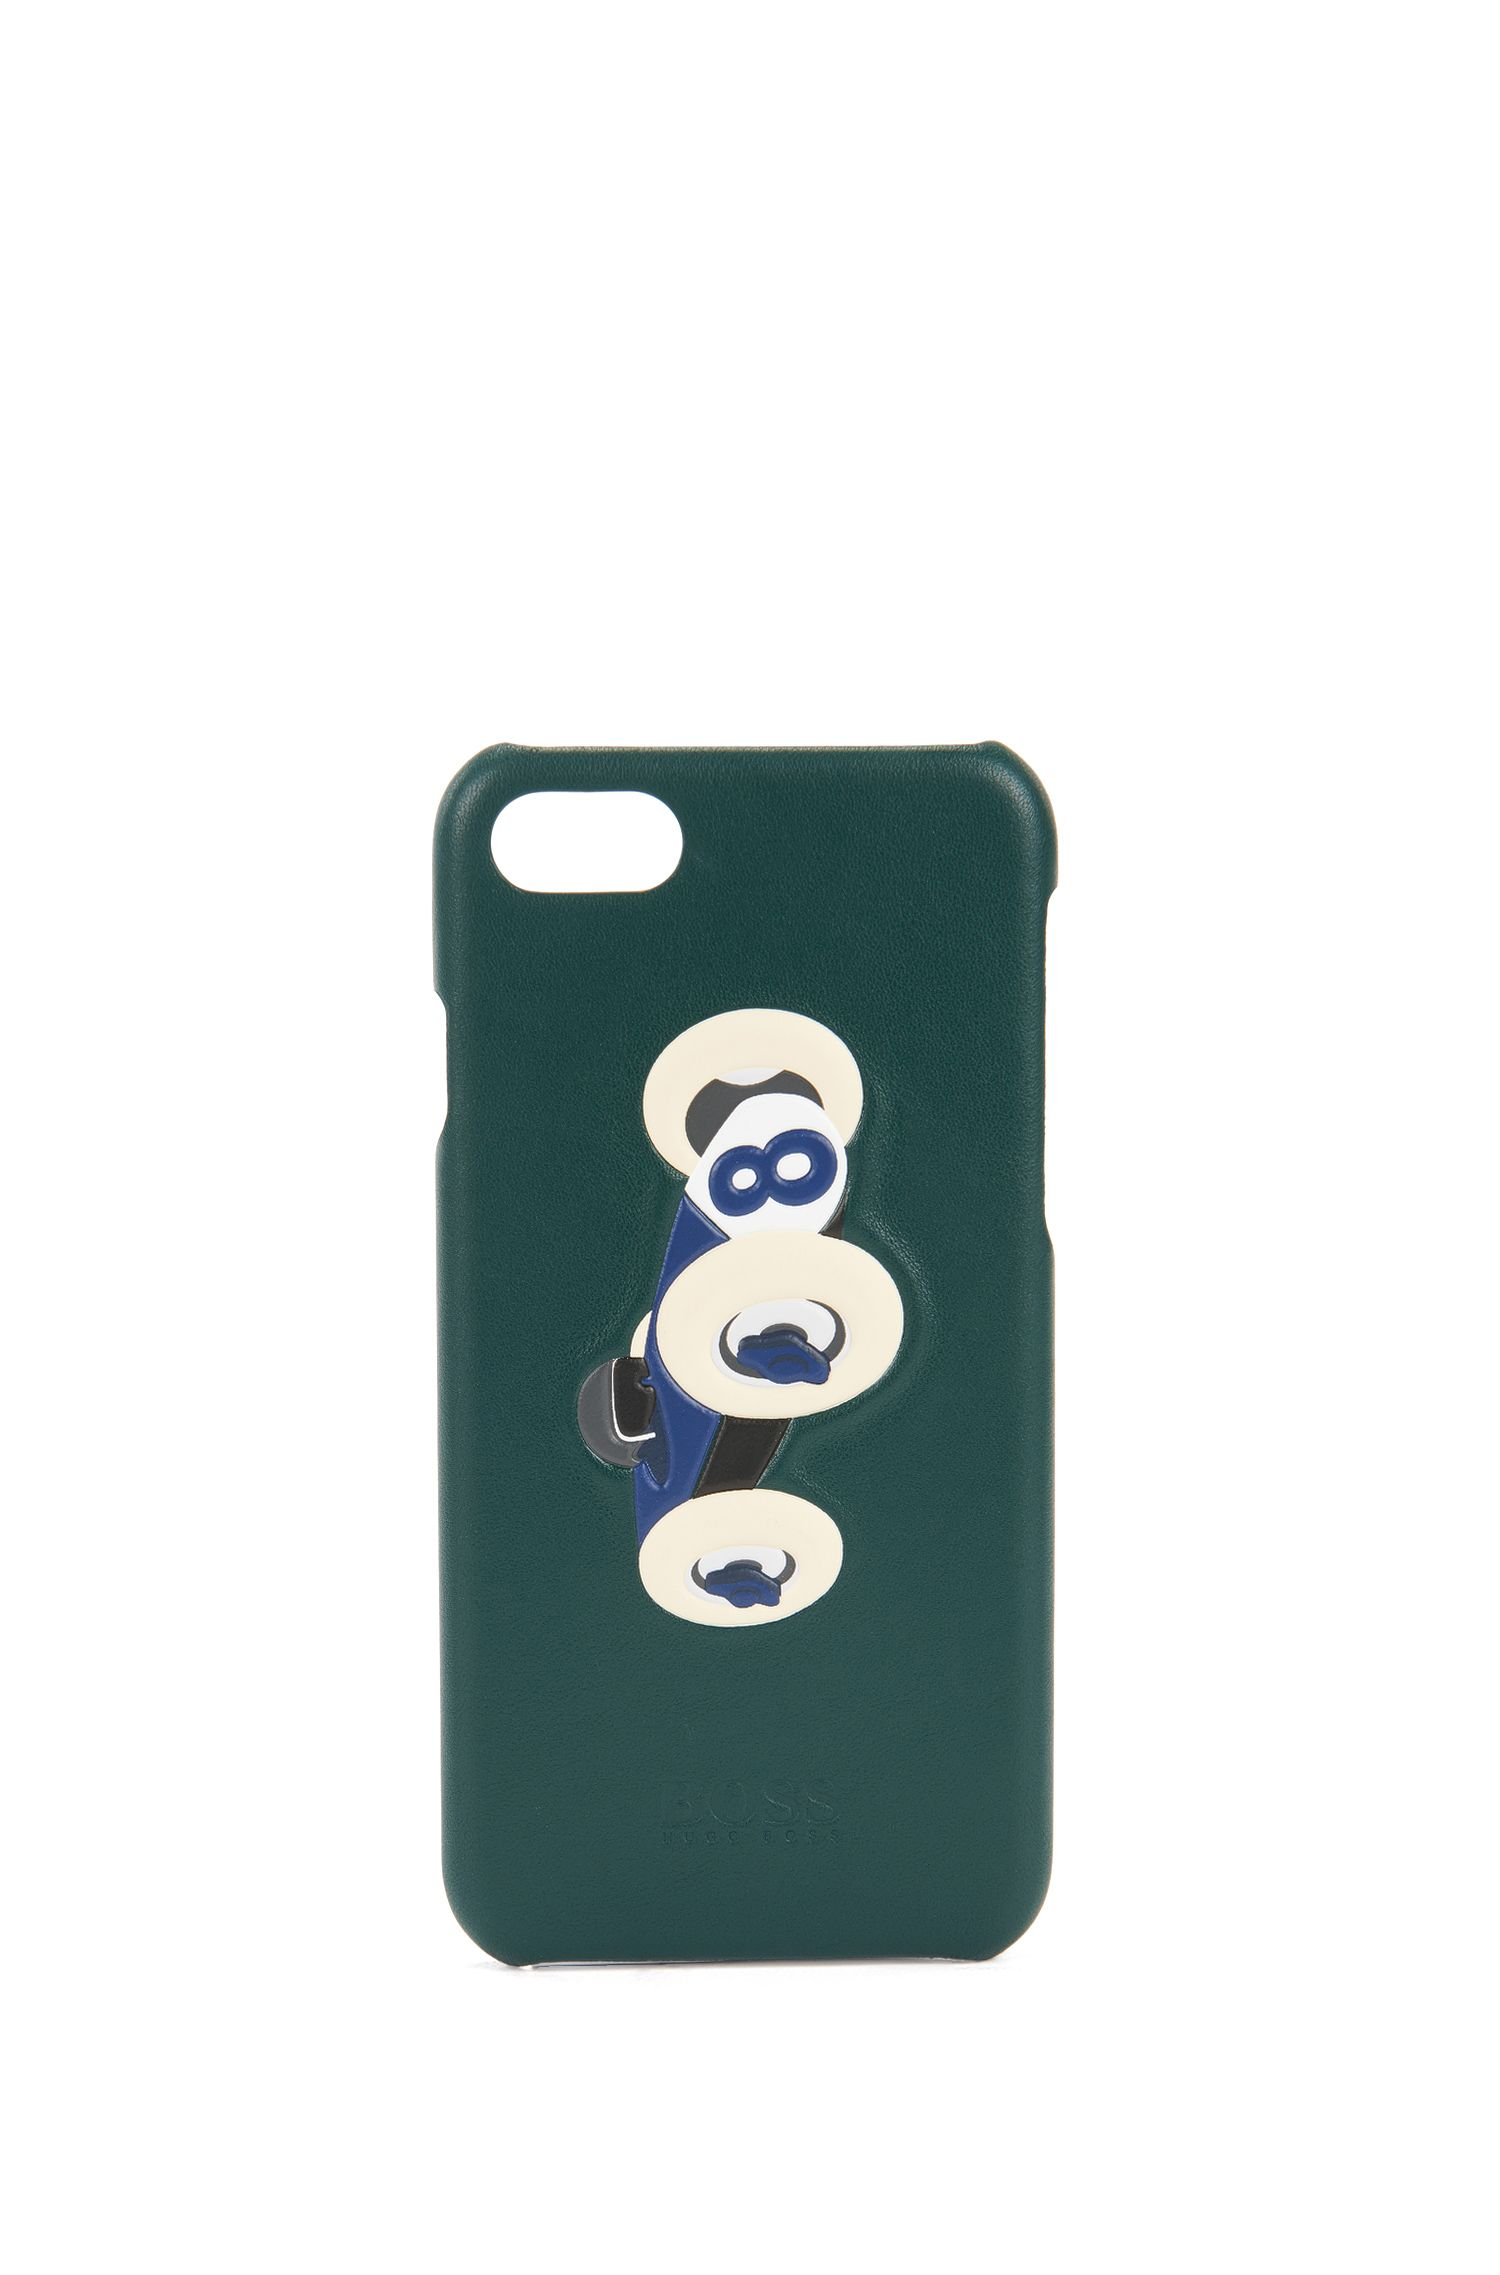 Leather iPhone 7 holder with race car motif